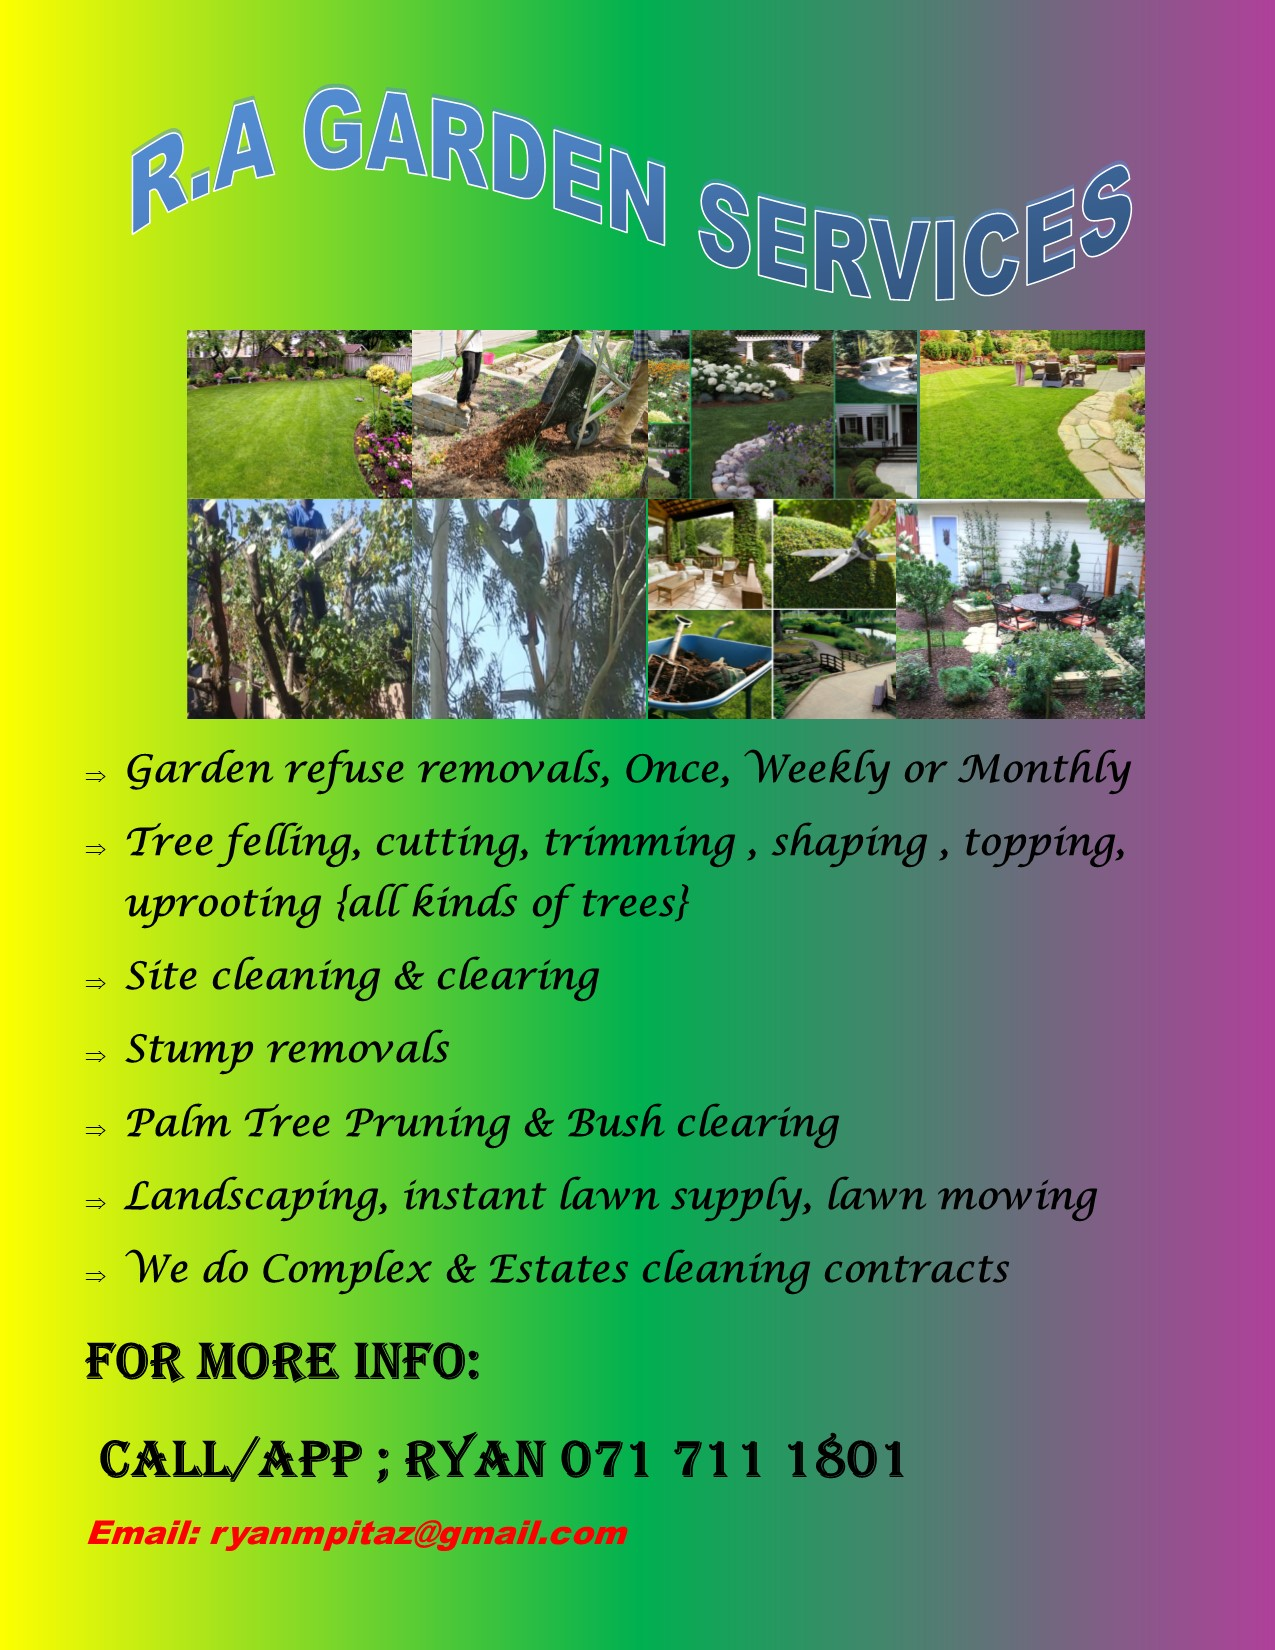 We deliver and install Instant lawns, lawn dressing, compost, landscaping mix